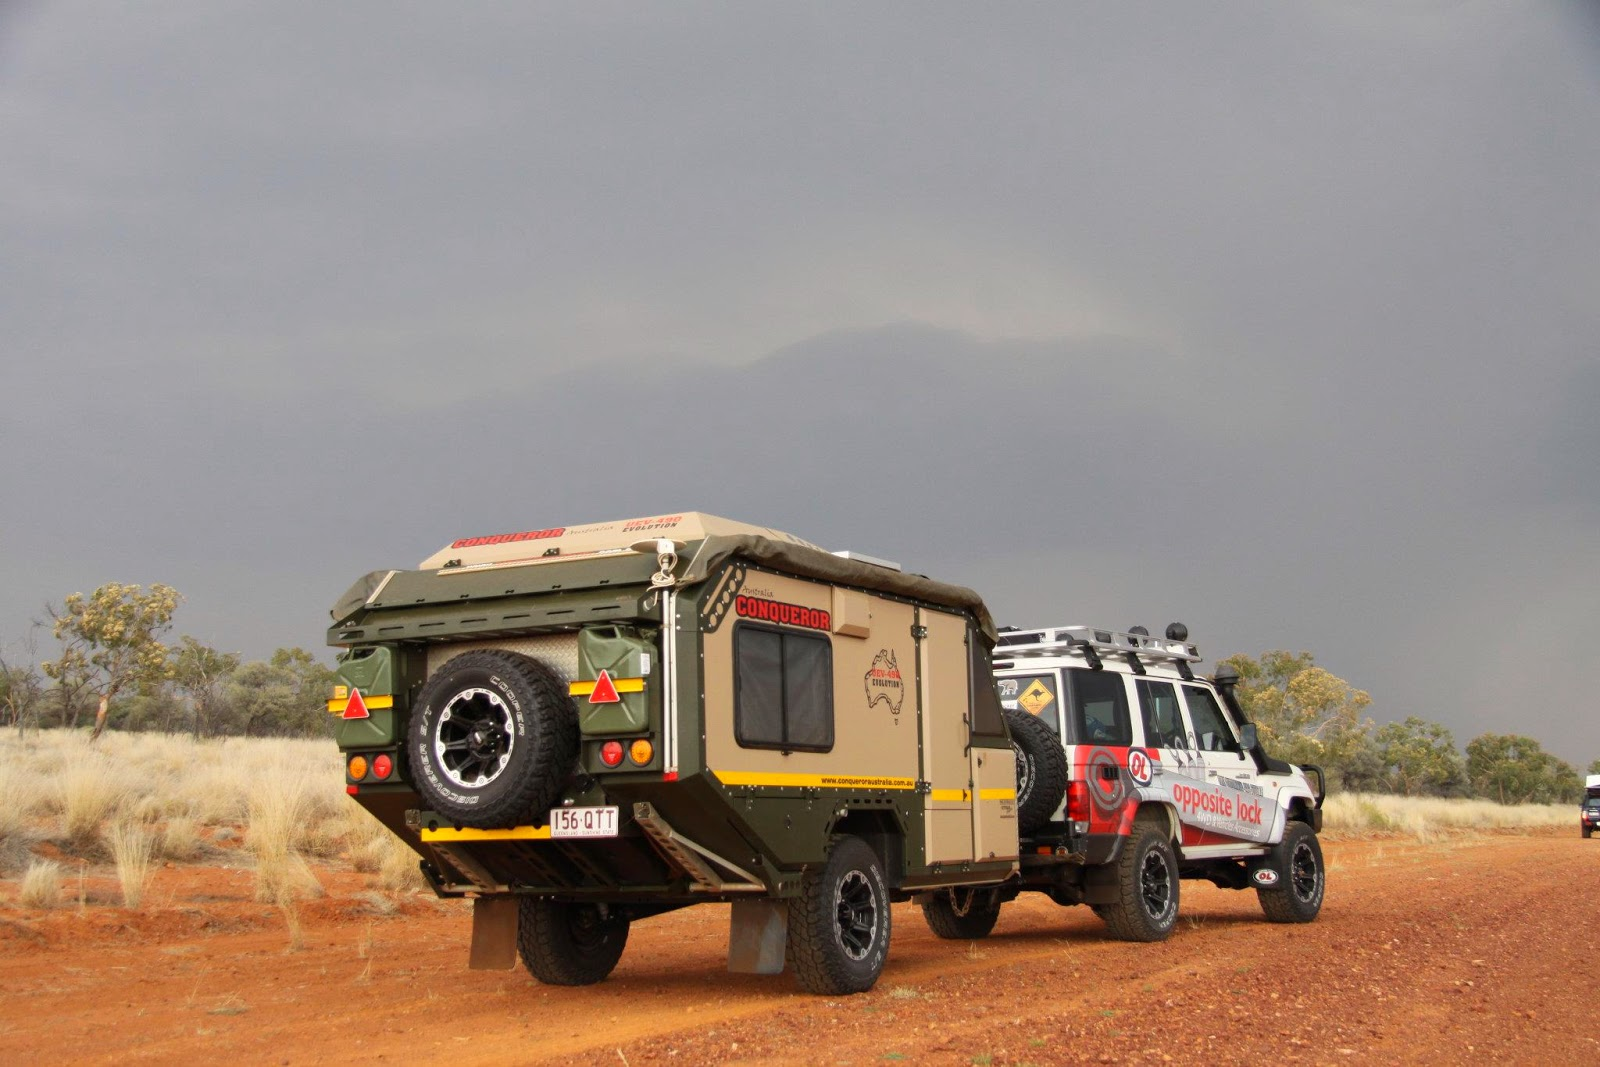 The Australian Range Of Urban Escape Vehicles UEVs Come In Six Different Models And Have Amenities Like Independent Suspension Systems Large Hot Water